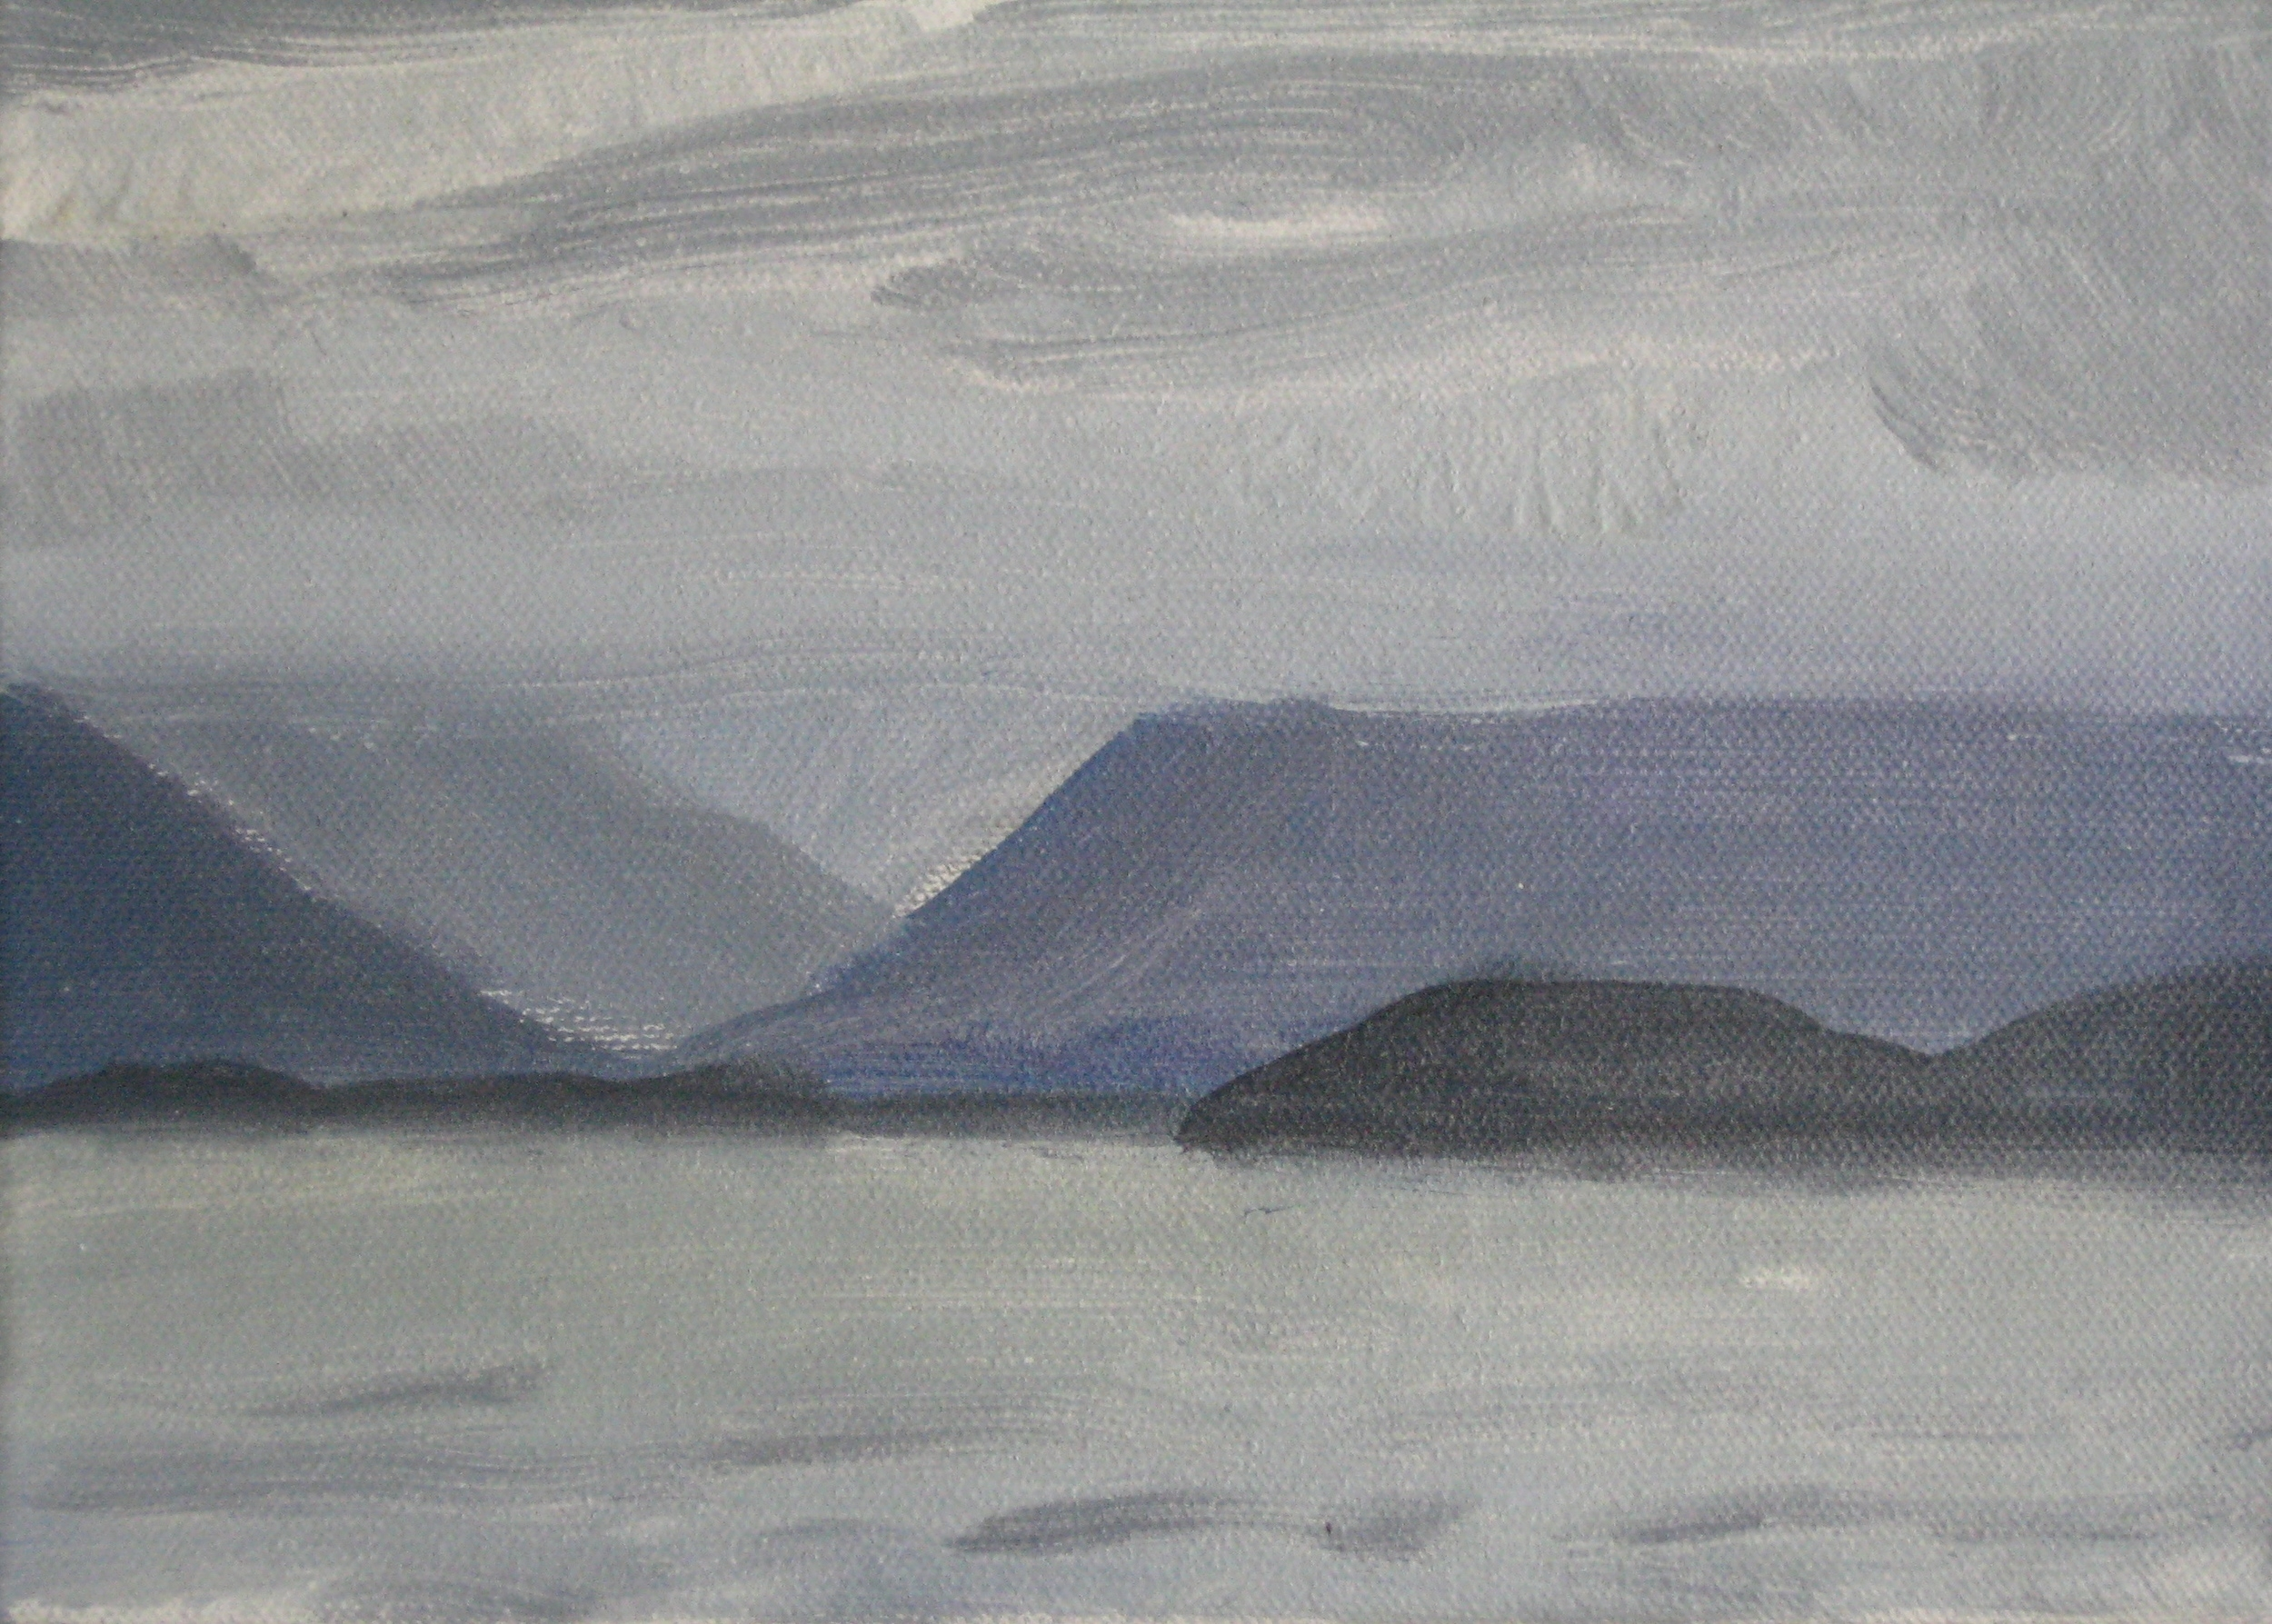 "WEST ICELAND 2  8X6"" (20X15cm)   Oil on canvas  Exhibited at 2016 ING Discerning Eye Exhibition, Mall Galleries, London"